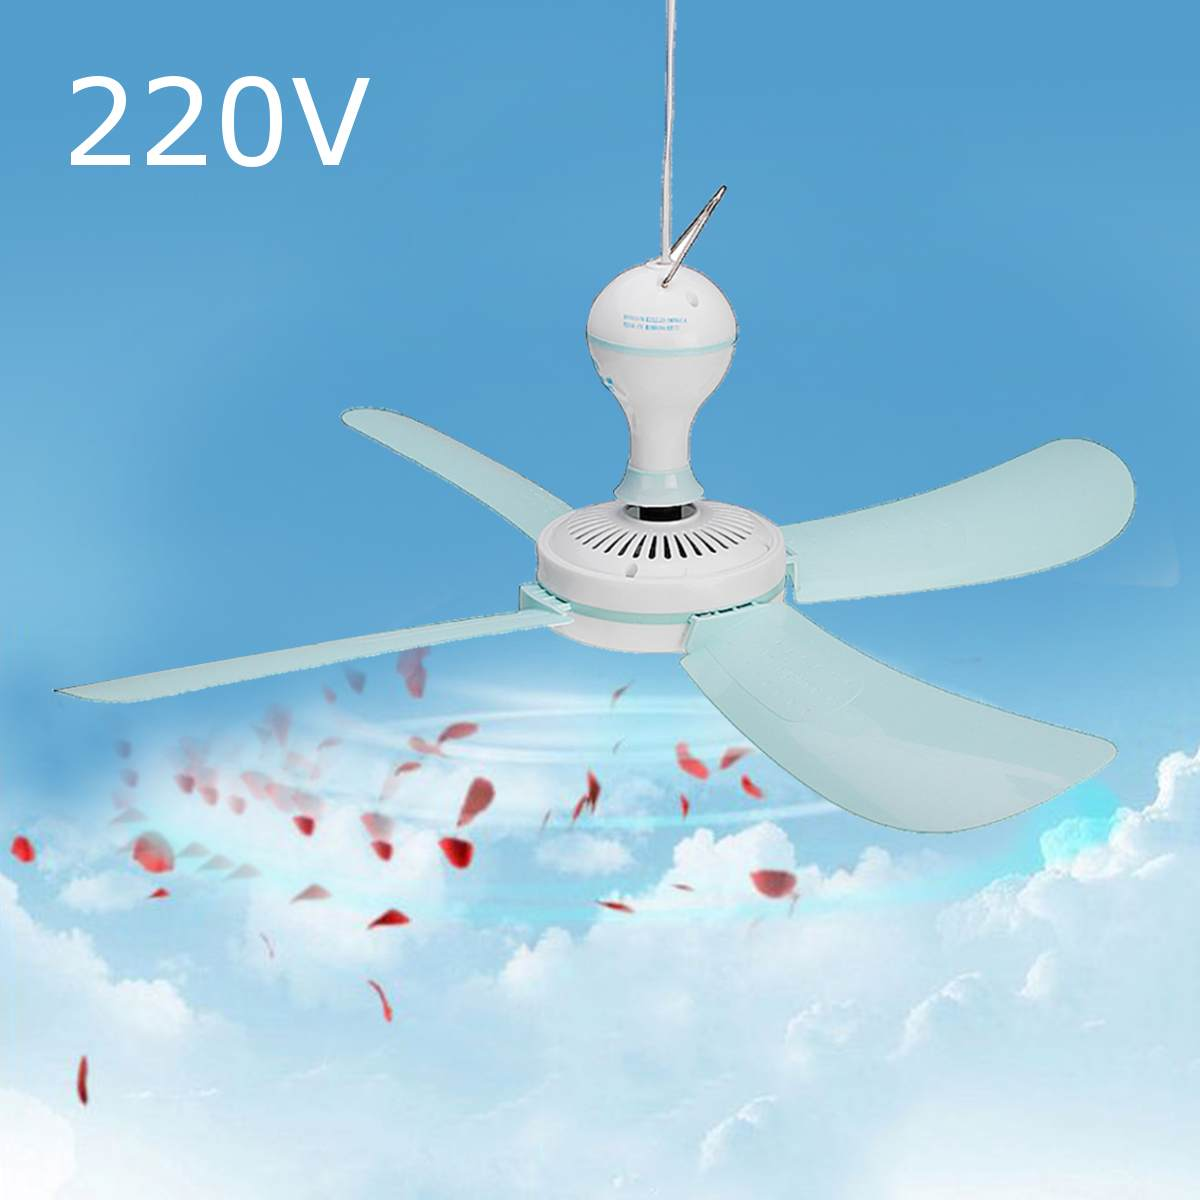 220v 16w Large Silent Ceiling Fan  Blade Ceiling Fan Switch Cooling Portable Easy Hanging Summer  Household Ceiling Fan